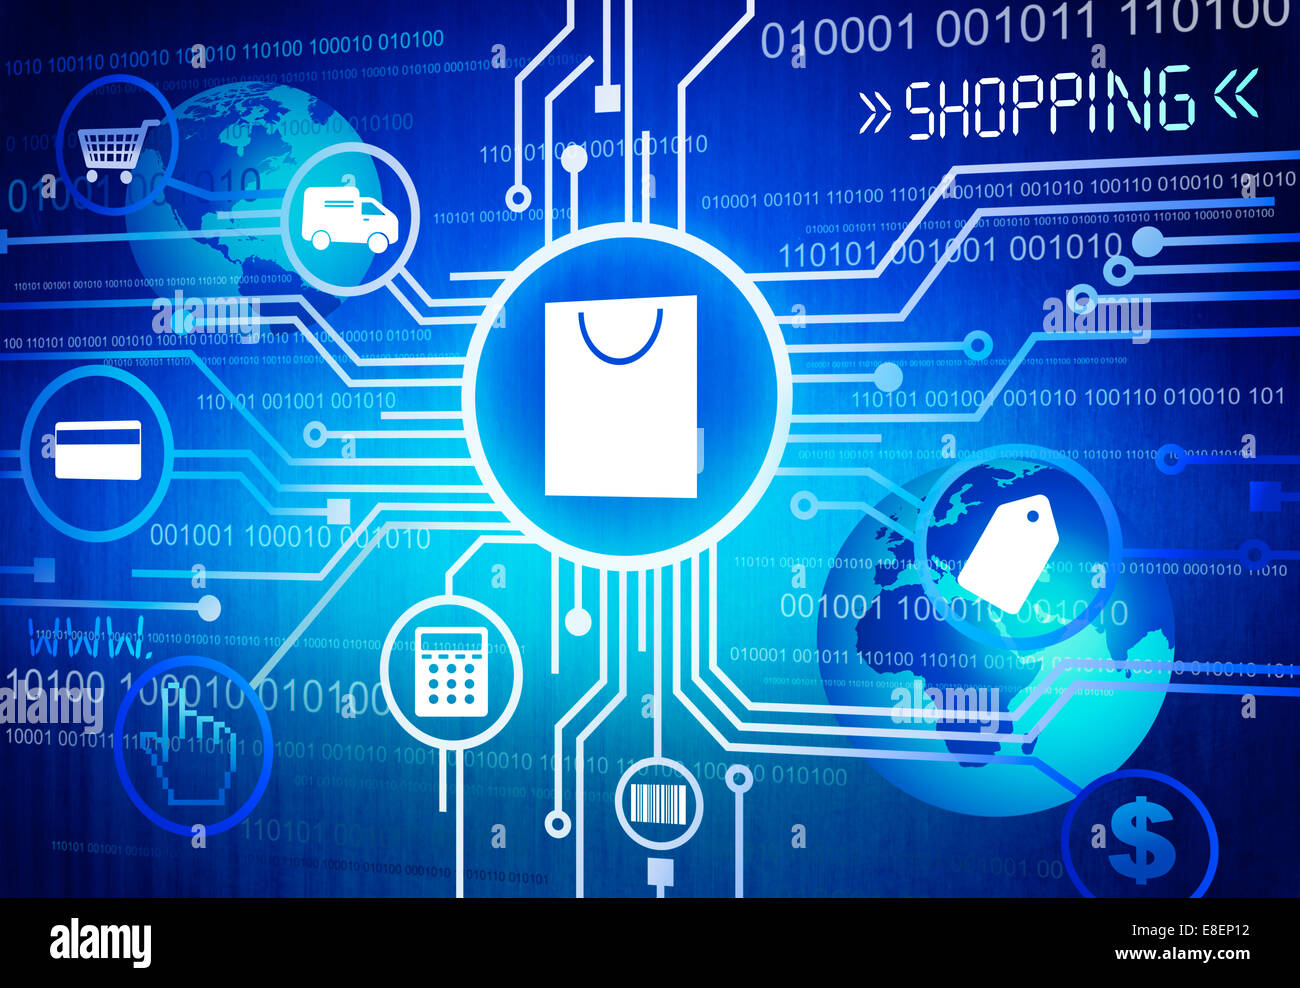 Digitally Generated Image of Shopping Concept - Stock Image